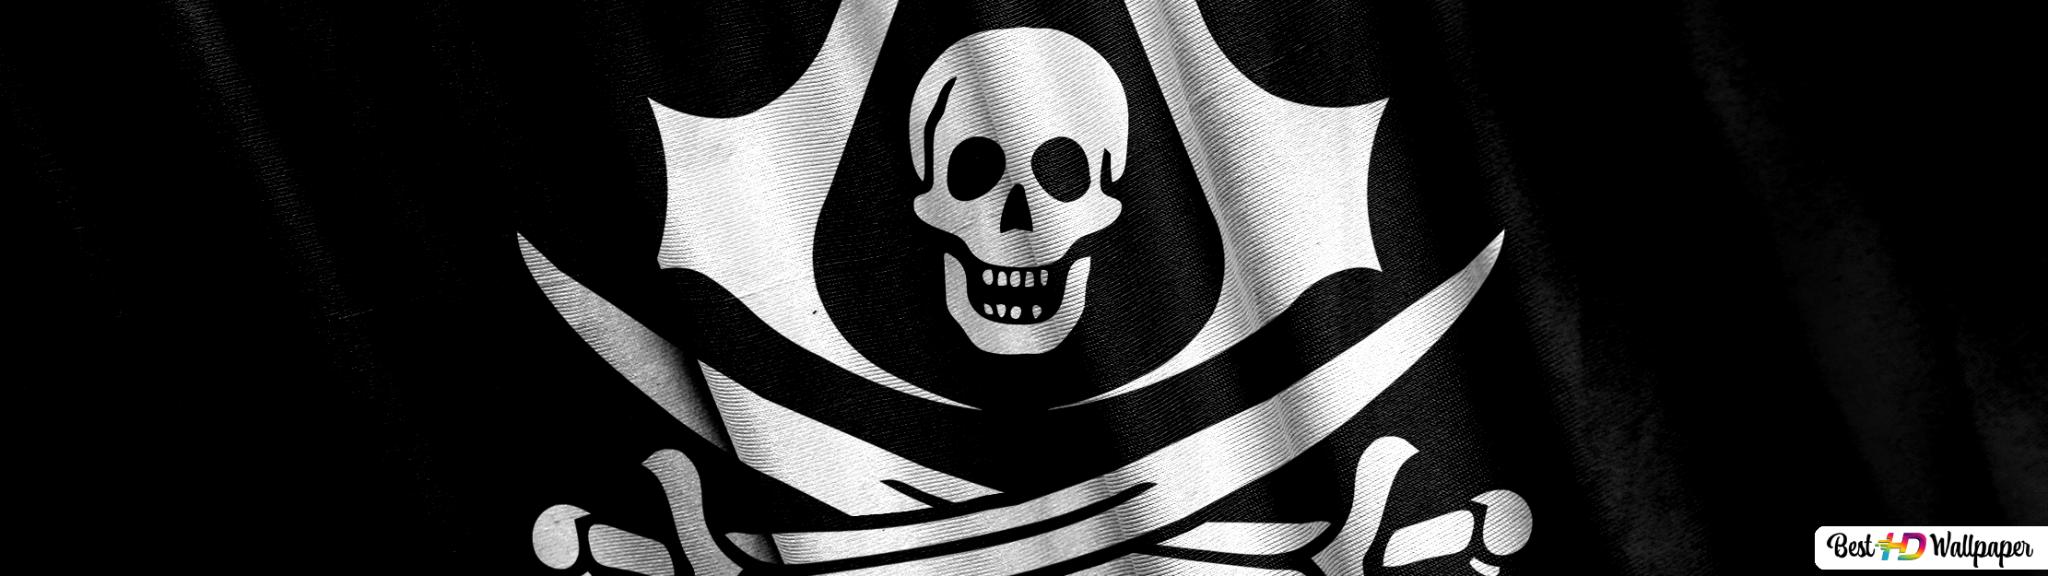 Assassin S Creed 4 Black Flag Pirate Logo Hd Wallpaper Download